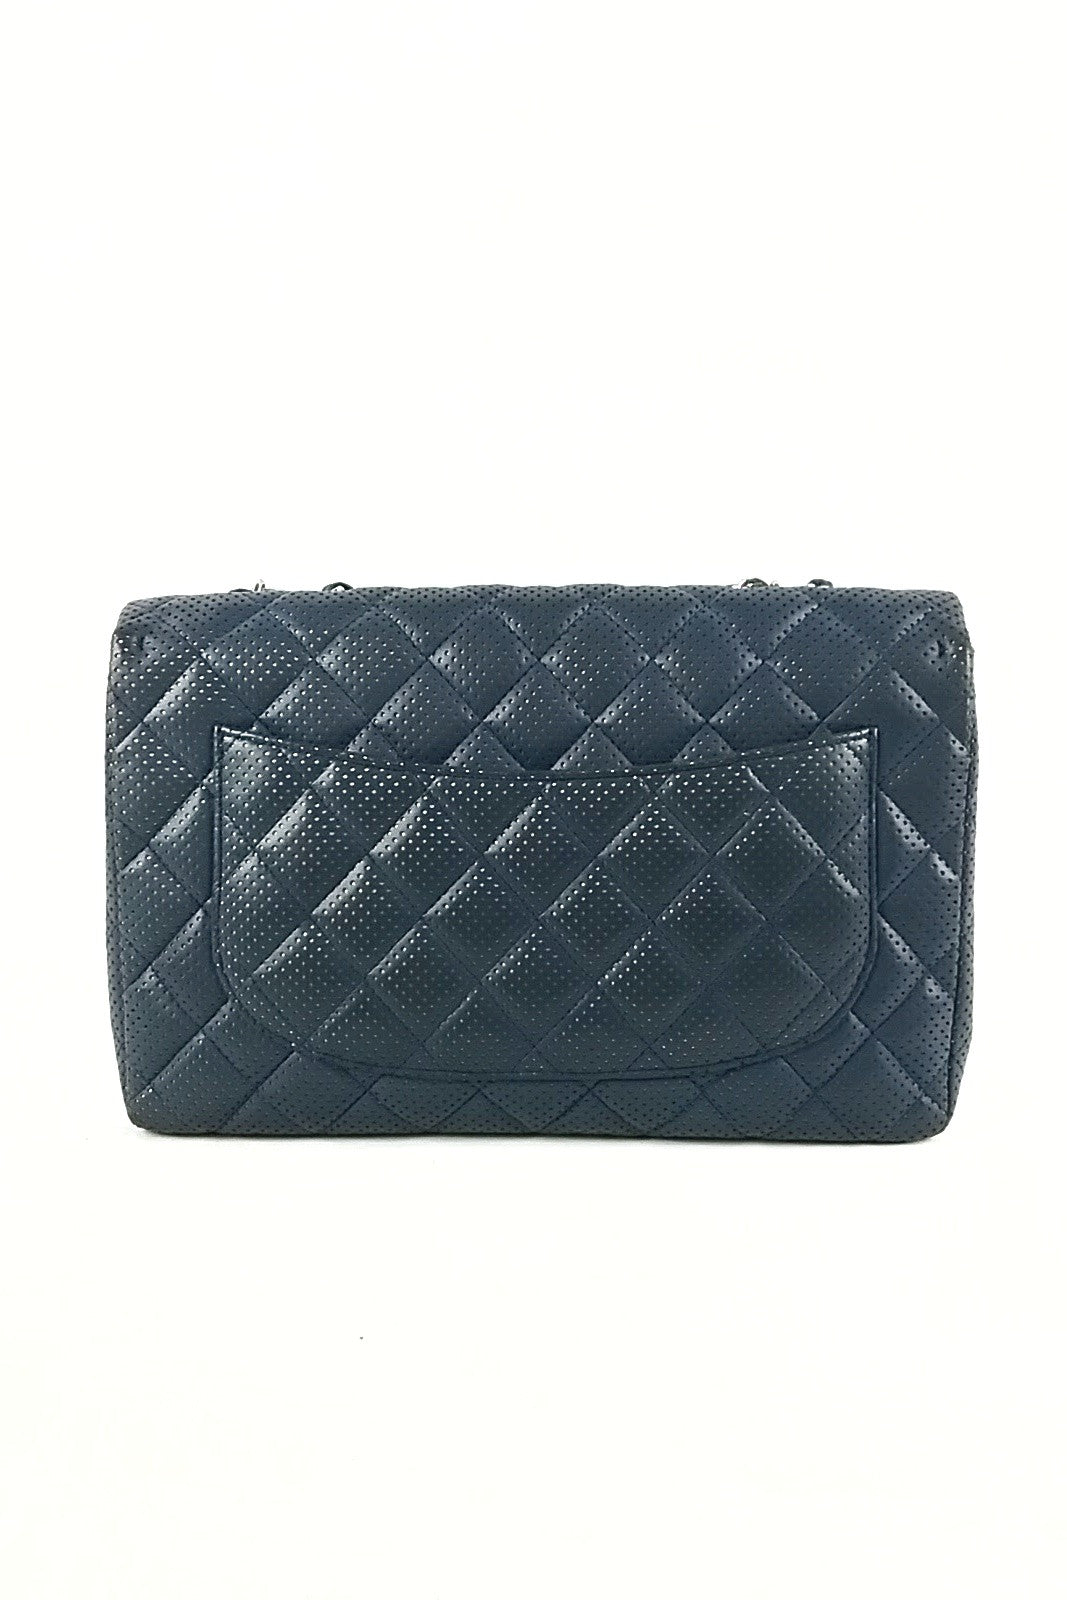 Perforated Midnight Blue Lambskin Single Flap Bag